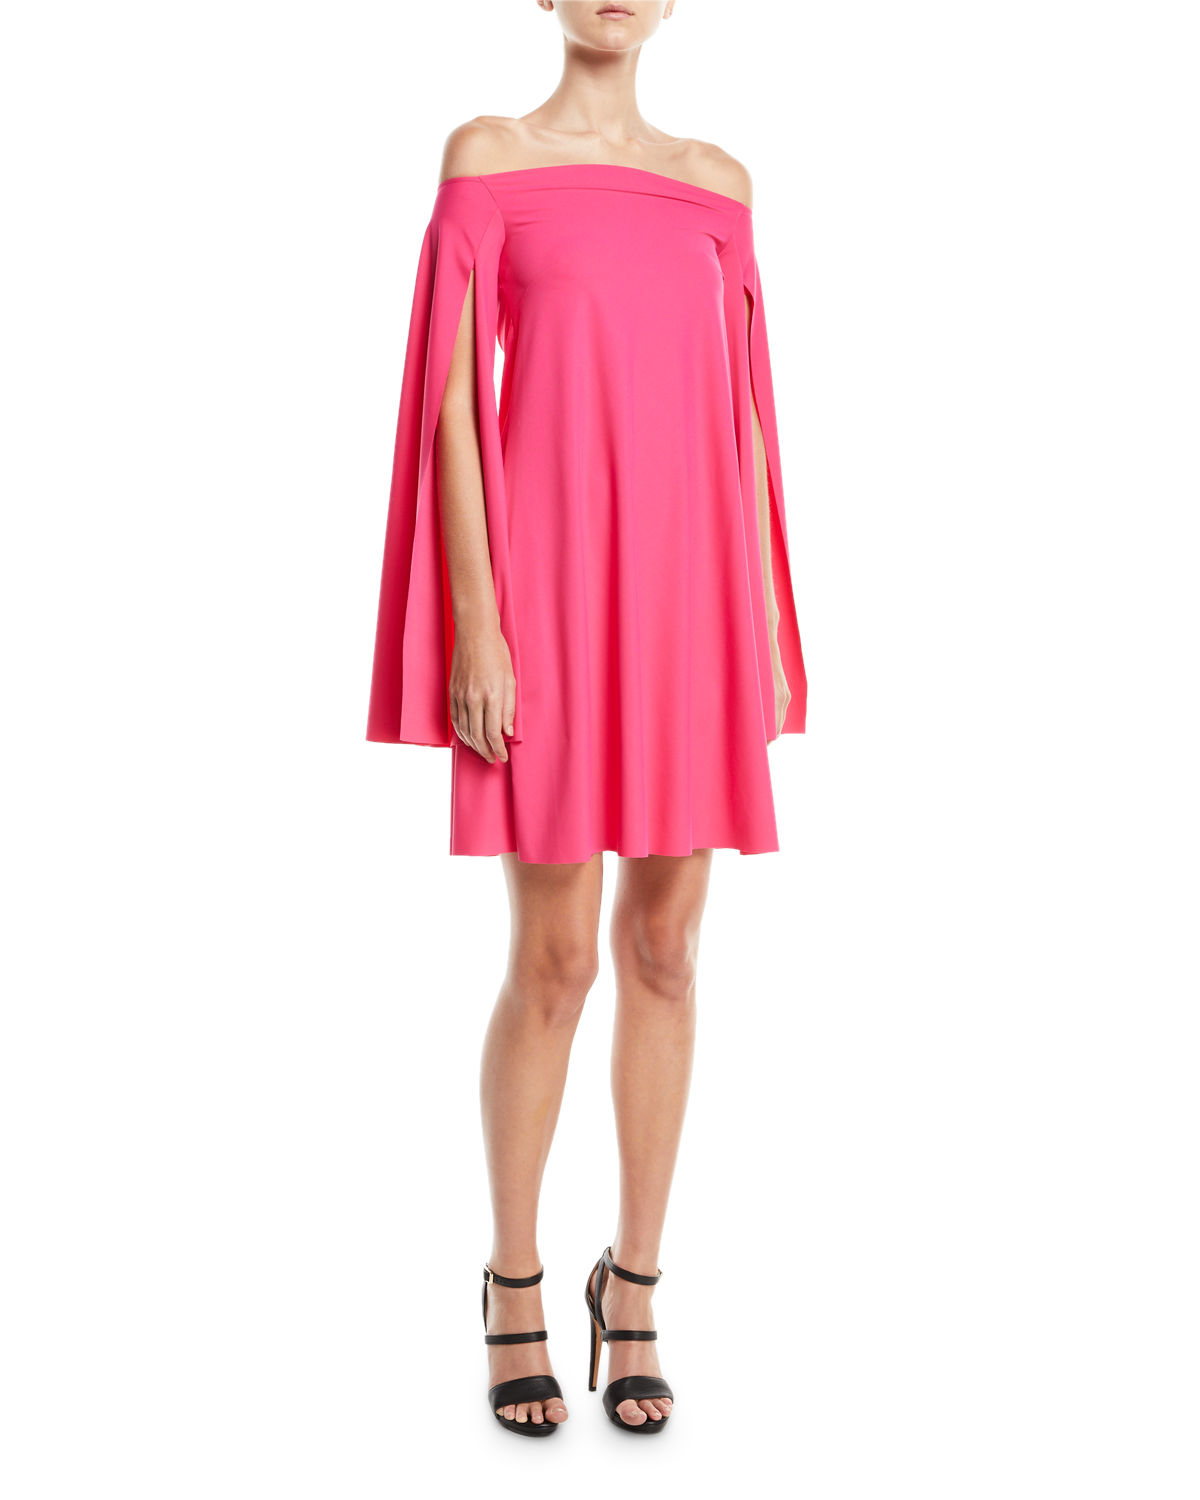 Chiara Boni La Petite Robe Dresses MAMI OFF-THE-SHOULDER CAPE-SLEEVE COCKTAIL DRESS